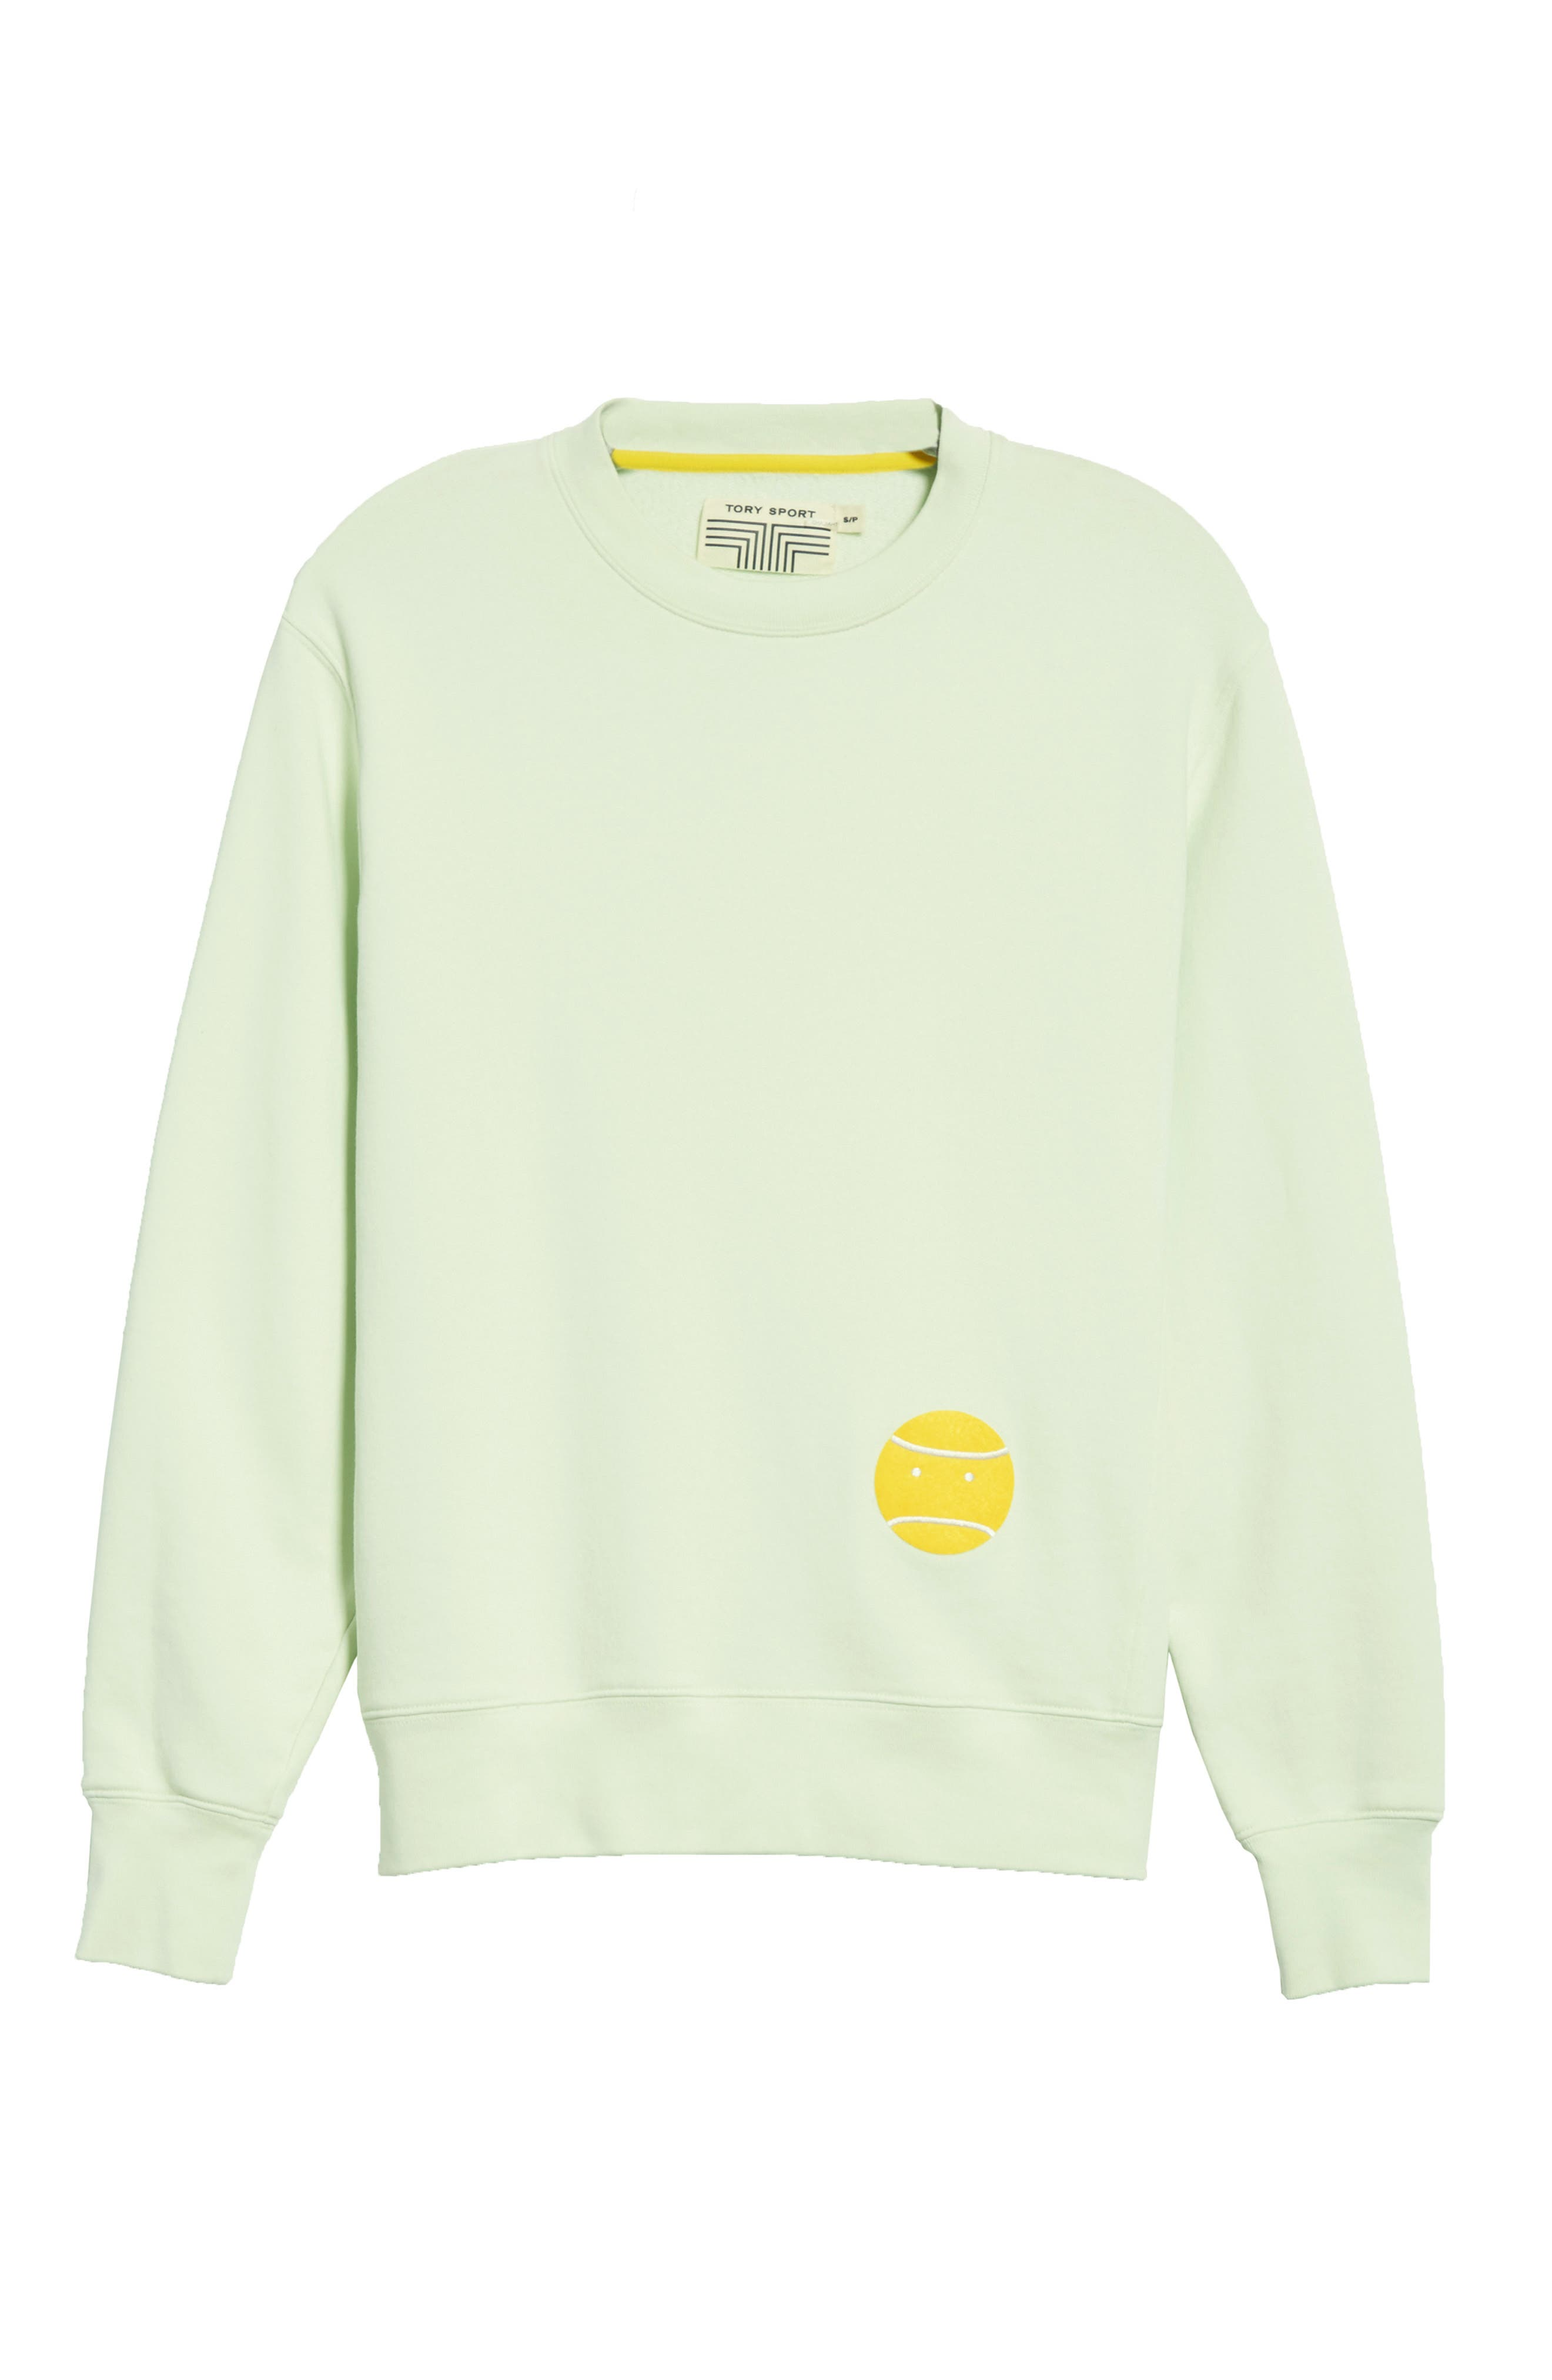 Little Grump French Terry Sweatshirt,                             Alternate thumbnail 7, color,                             328